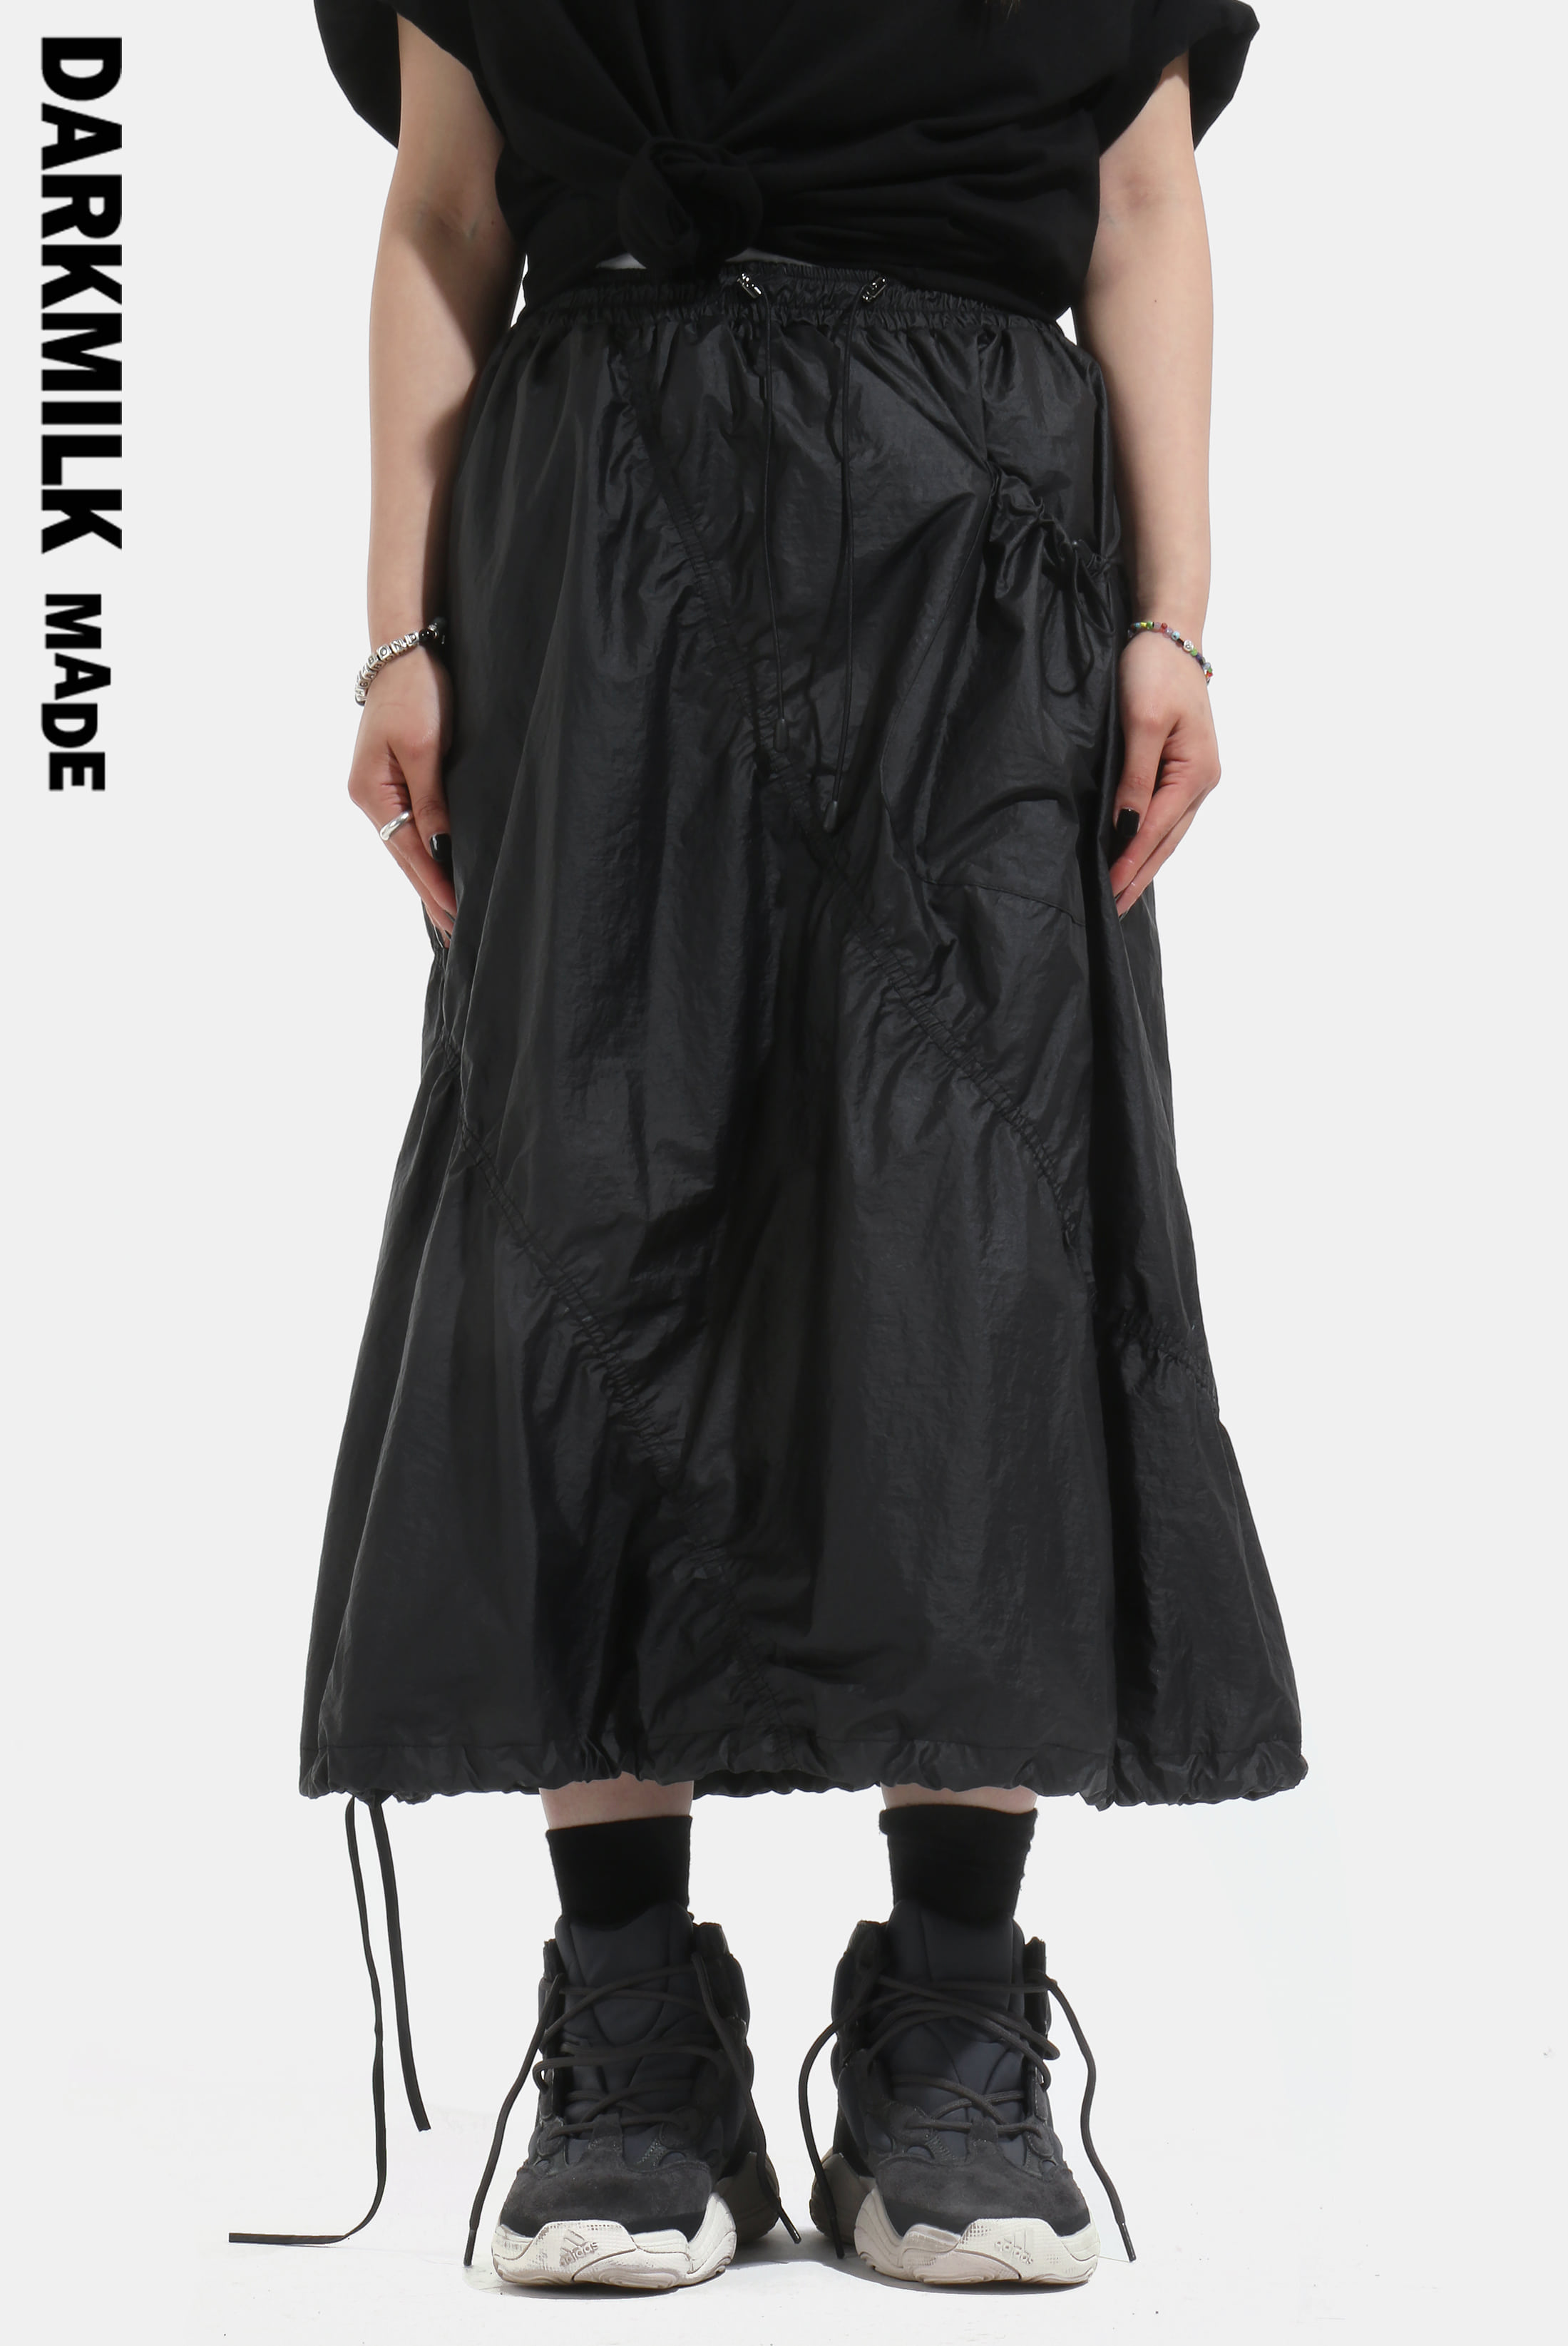 [MADE] Curve_Shirring Cotied Skirt [BLACK]